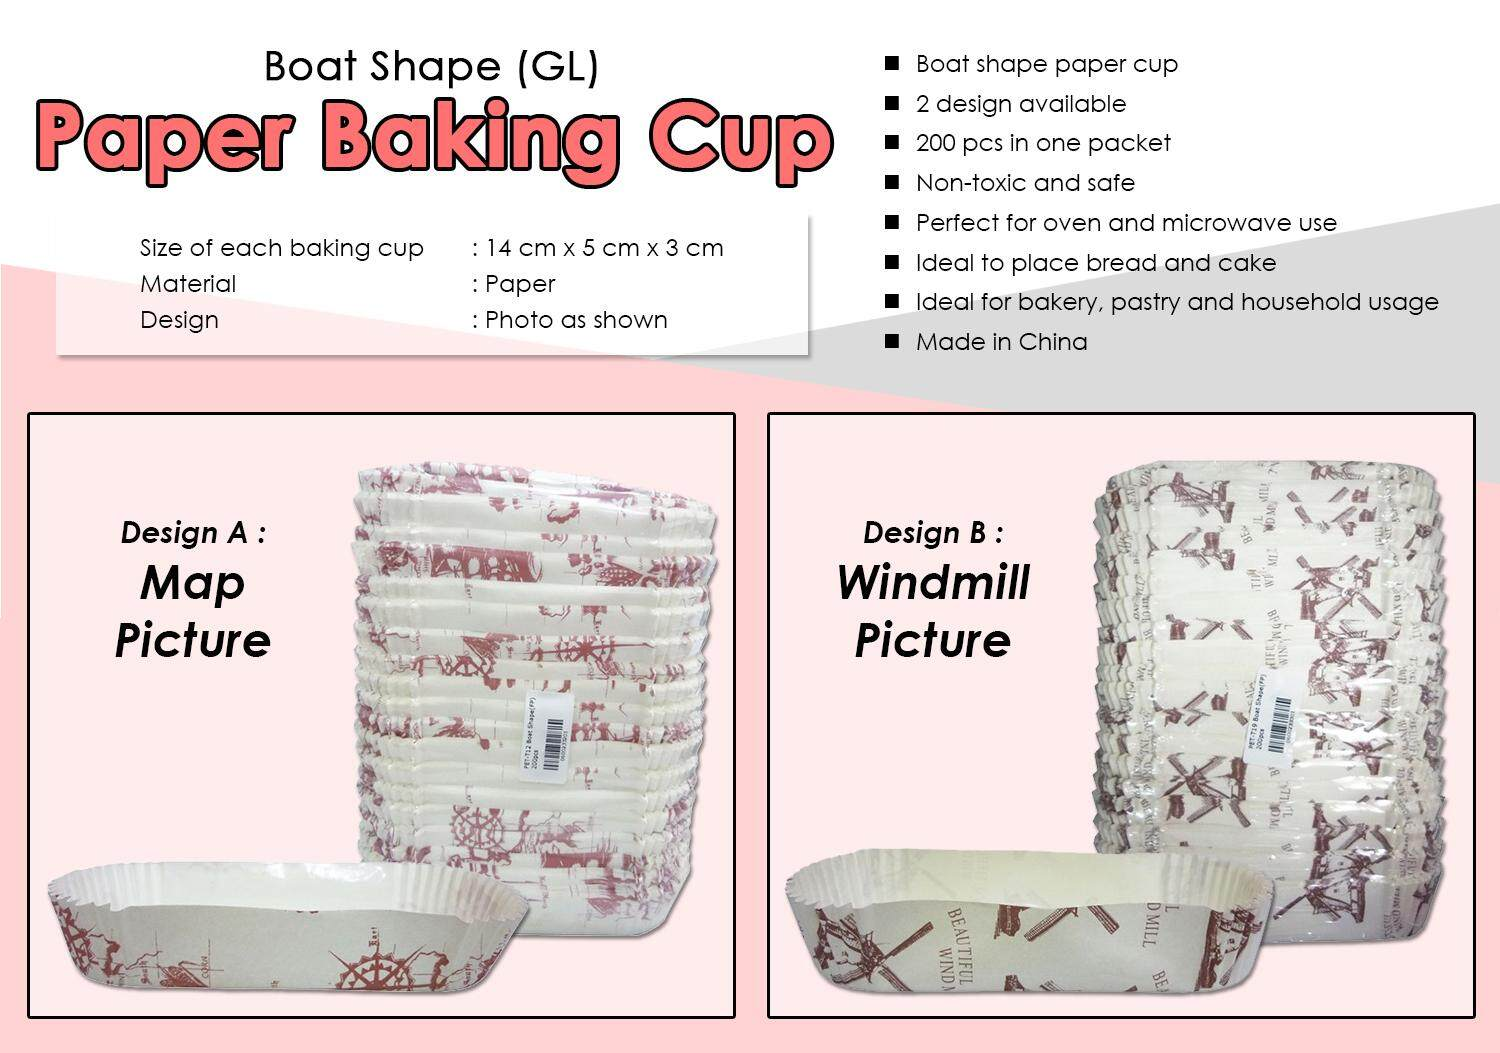 FP_Boat_Shape_Paper_Baking_Cup_200pcs_Product_02.jpg